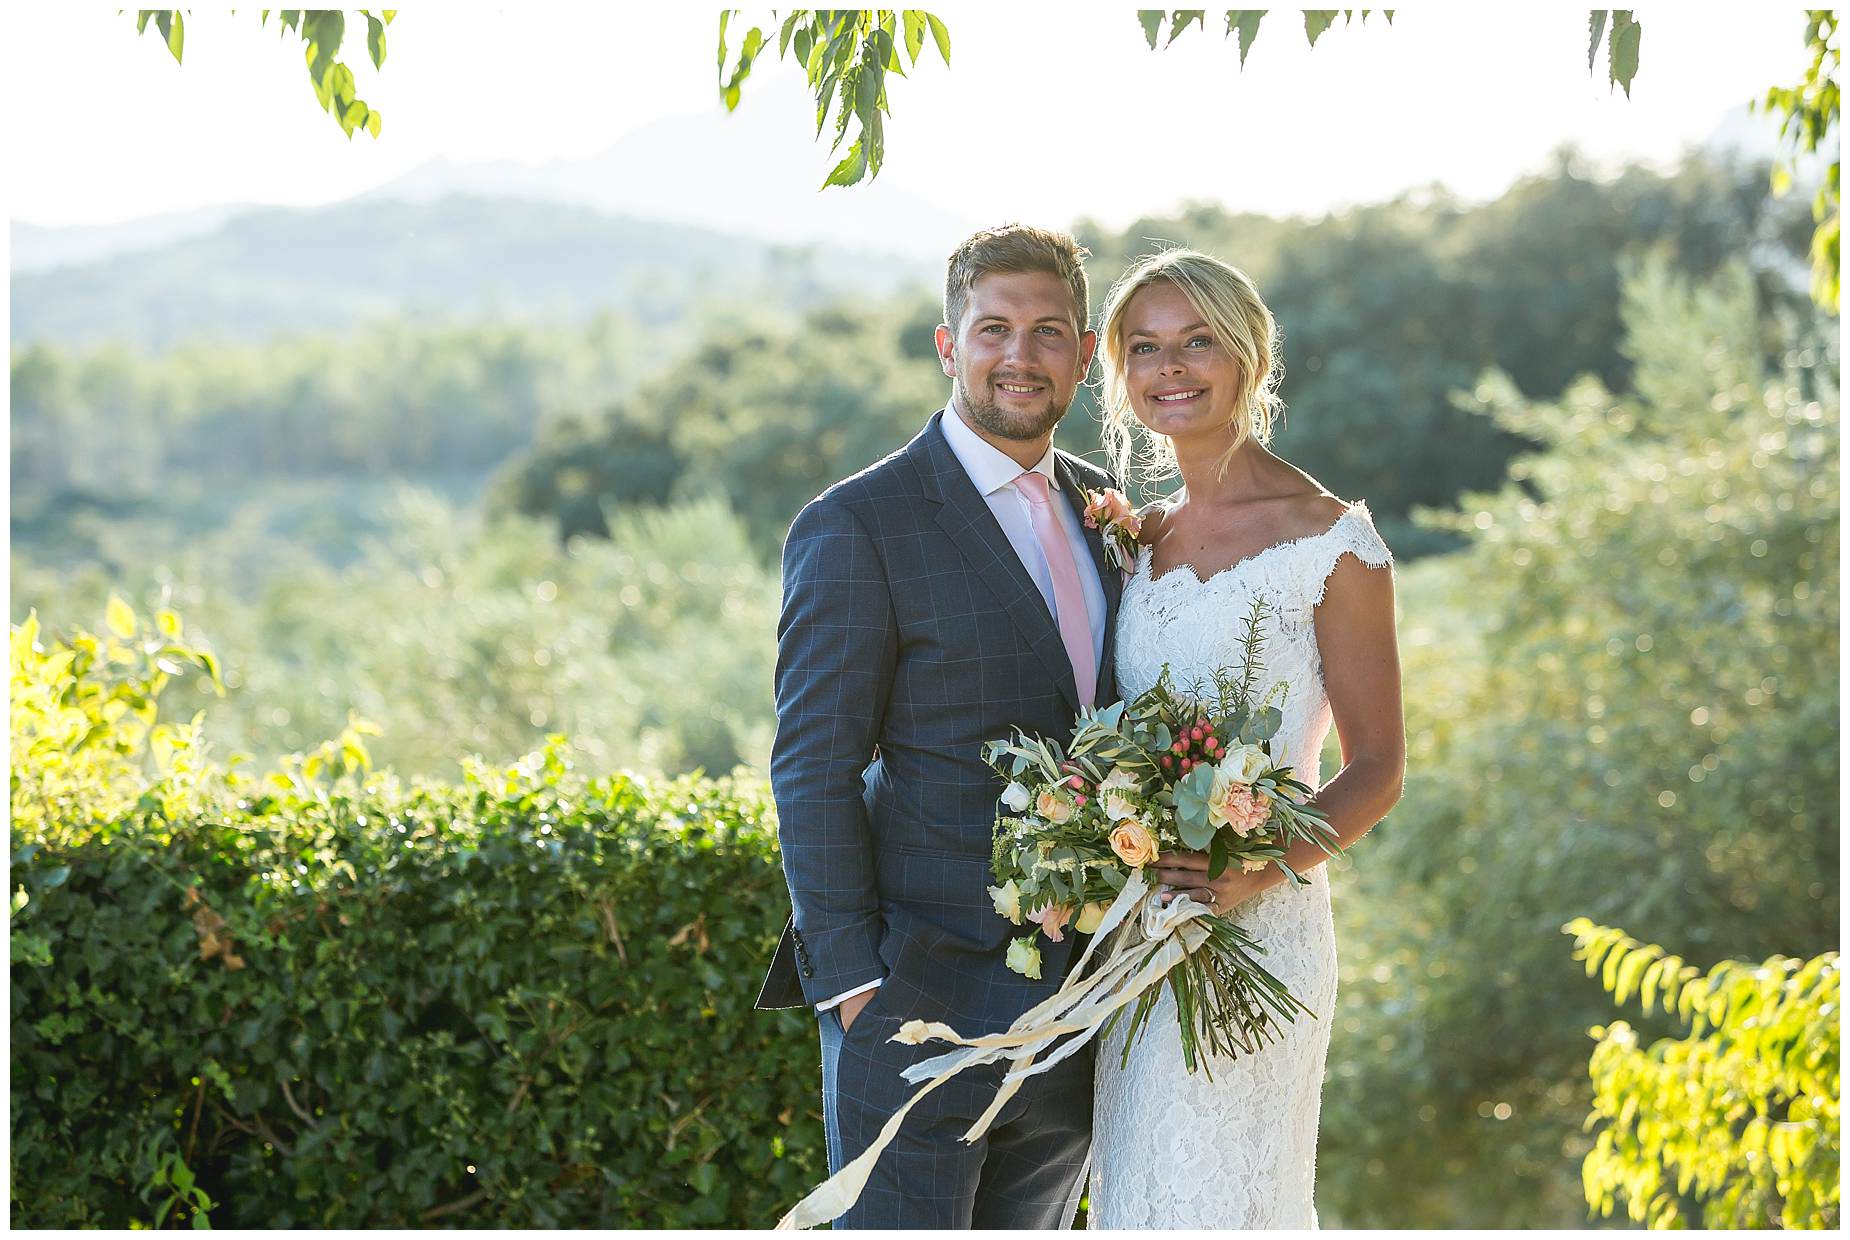 wedding pictures at Domaine Saint Germain France